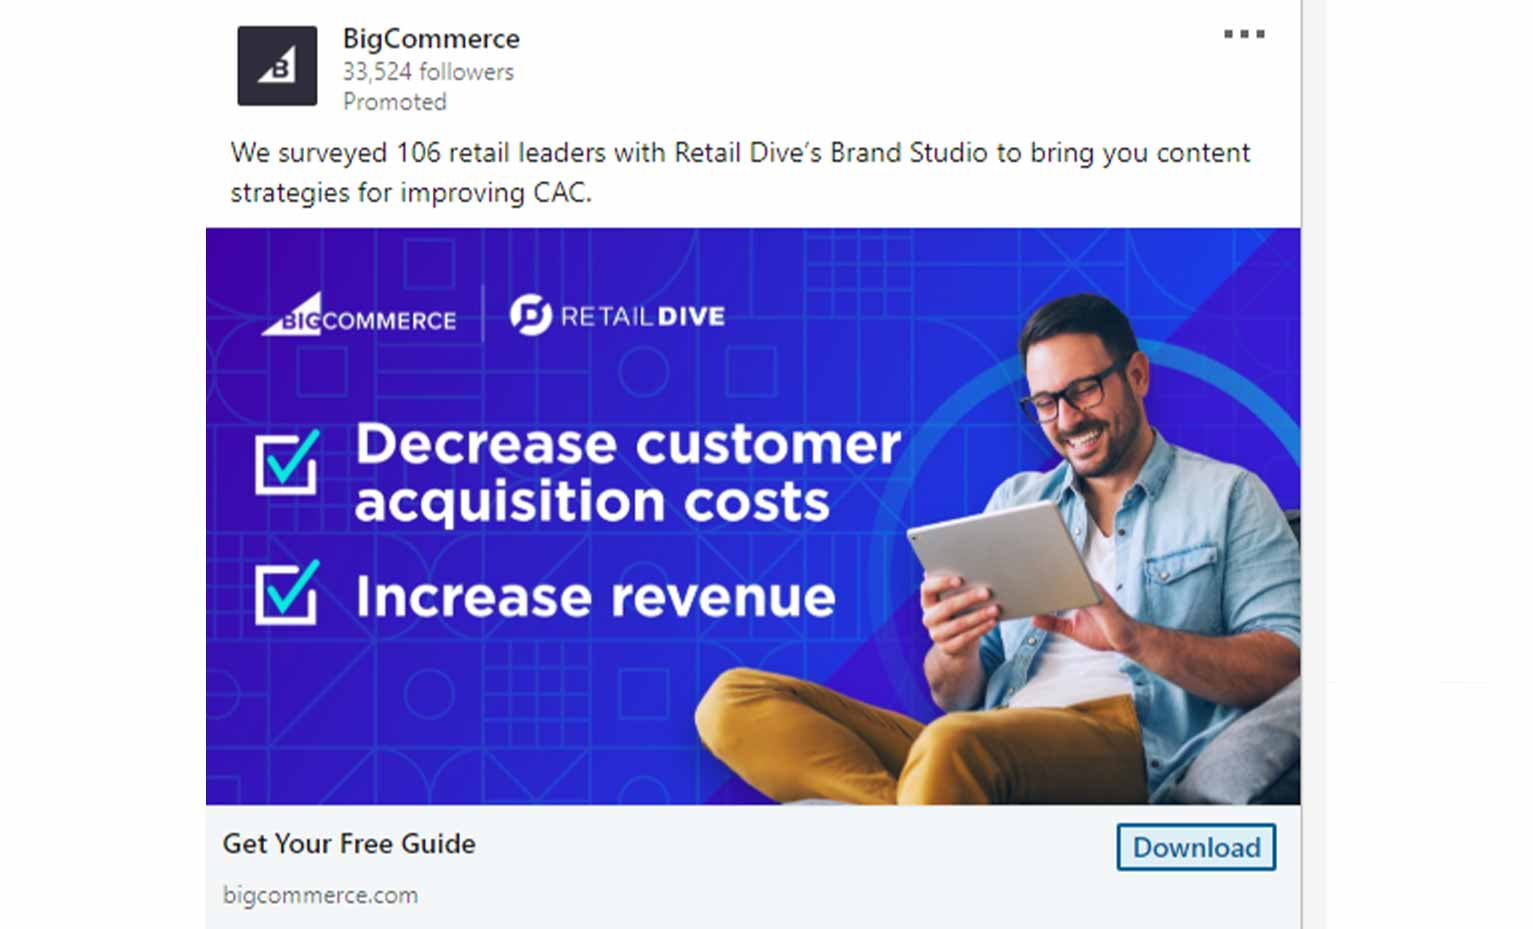 A promoted ad on LinkedIn run by the e-commerce site, BigCommerce.